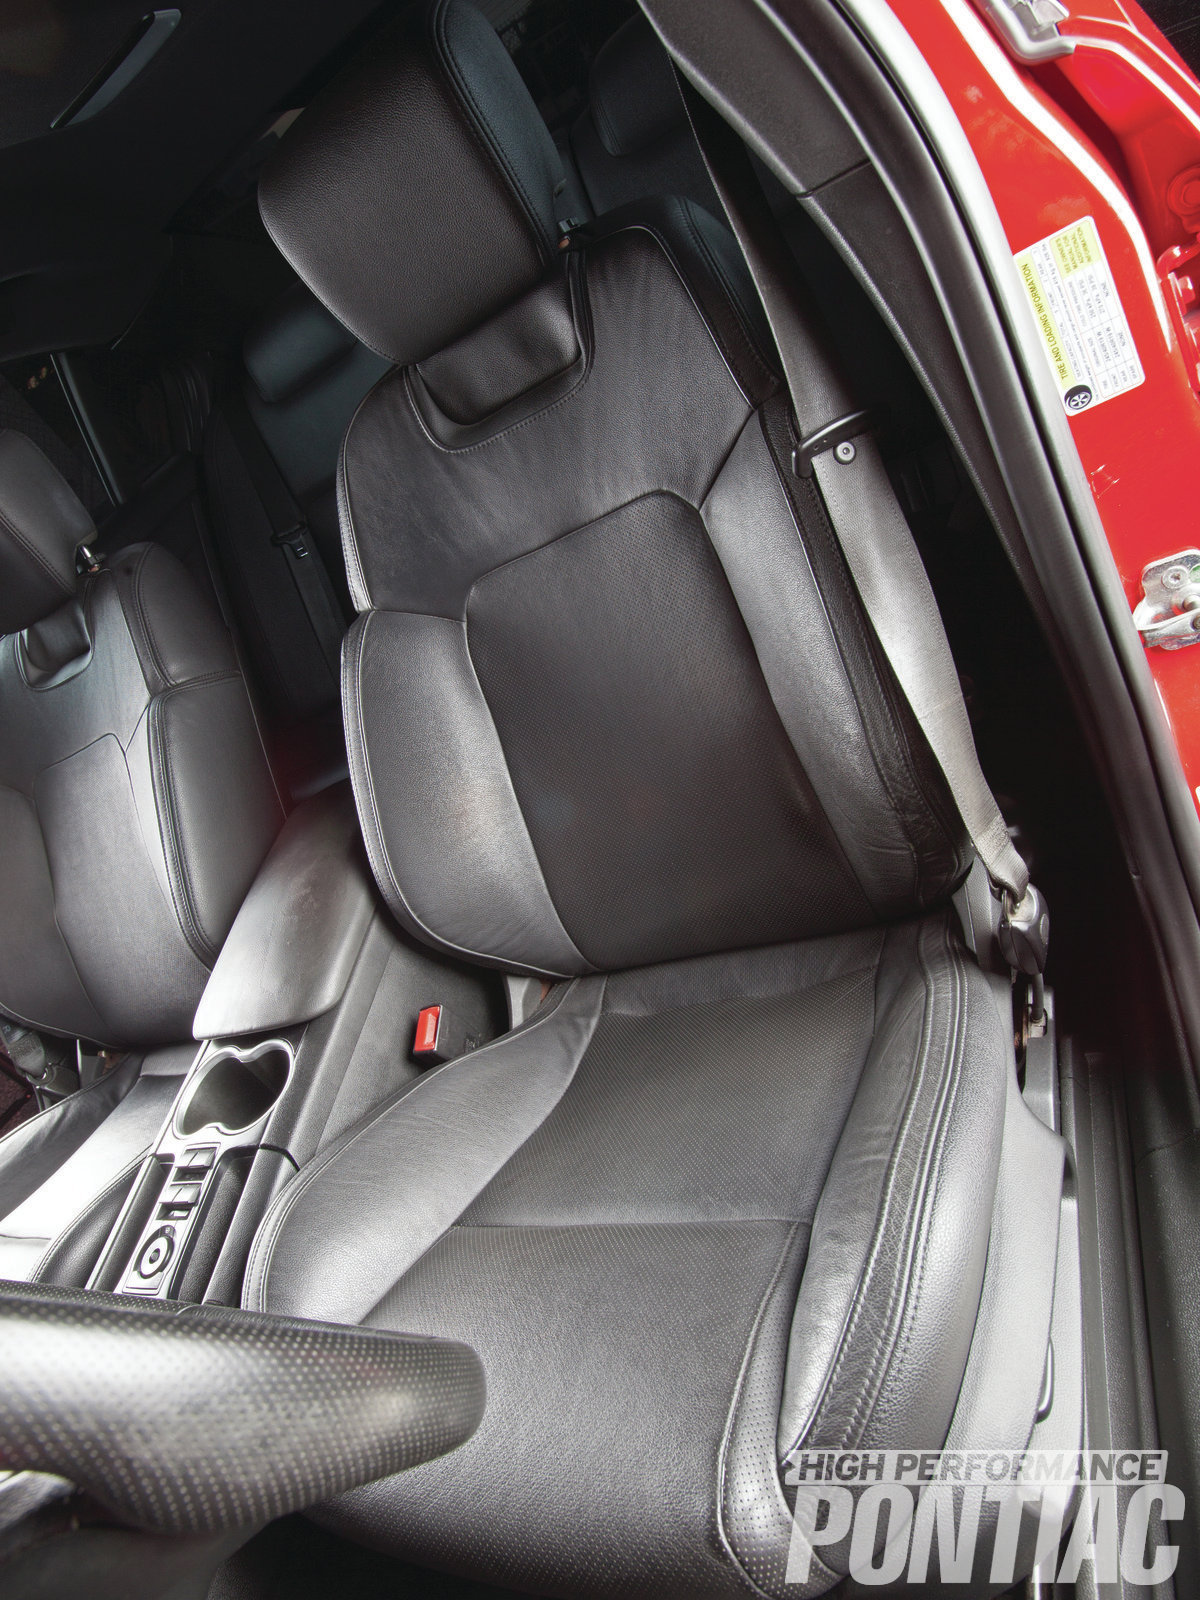 hight resolution of 2008 pontiac g8 gt seats